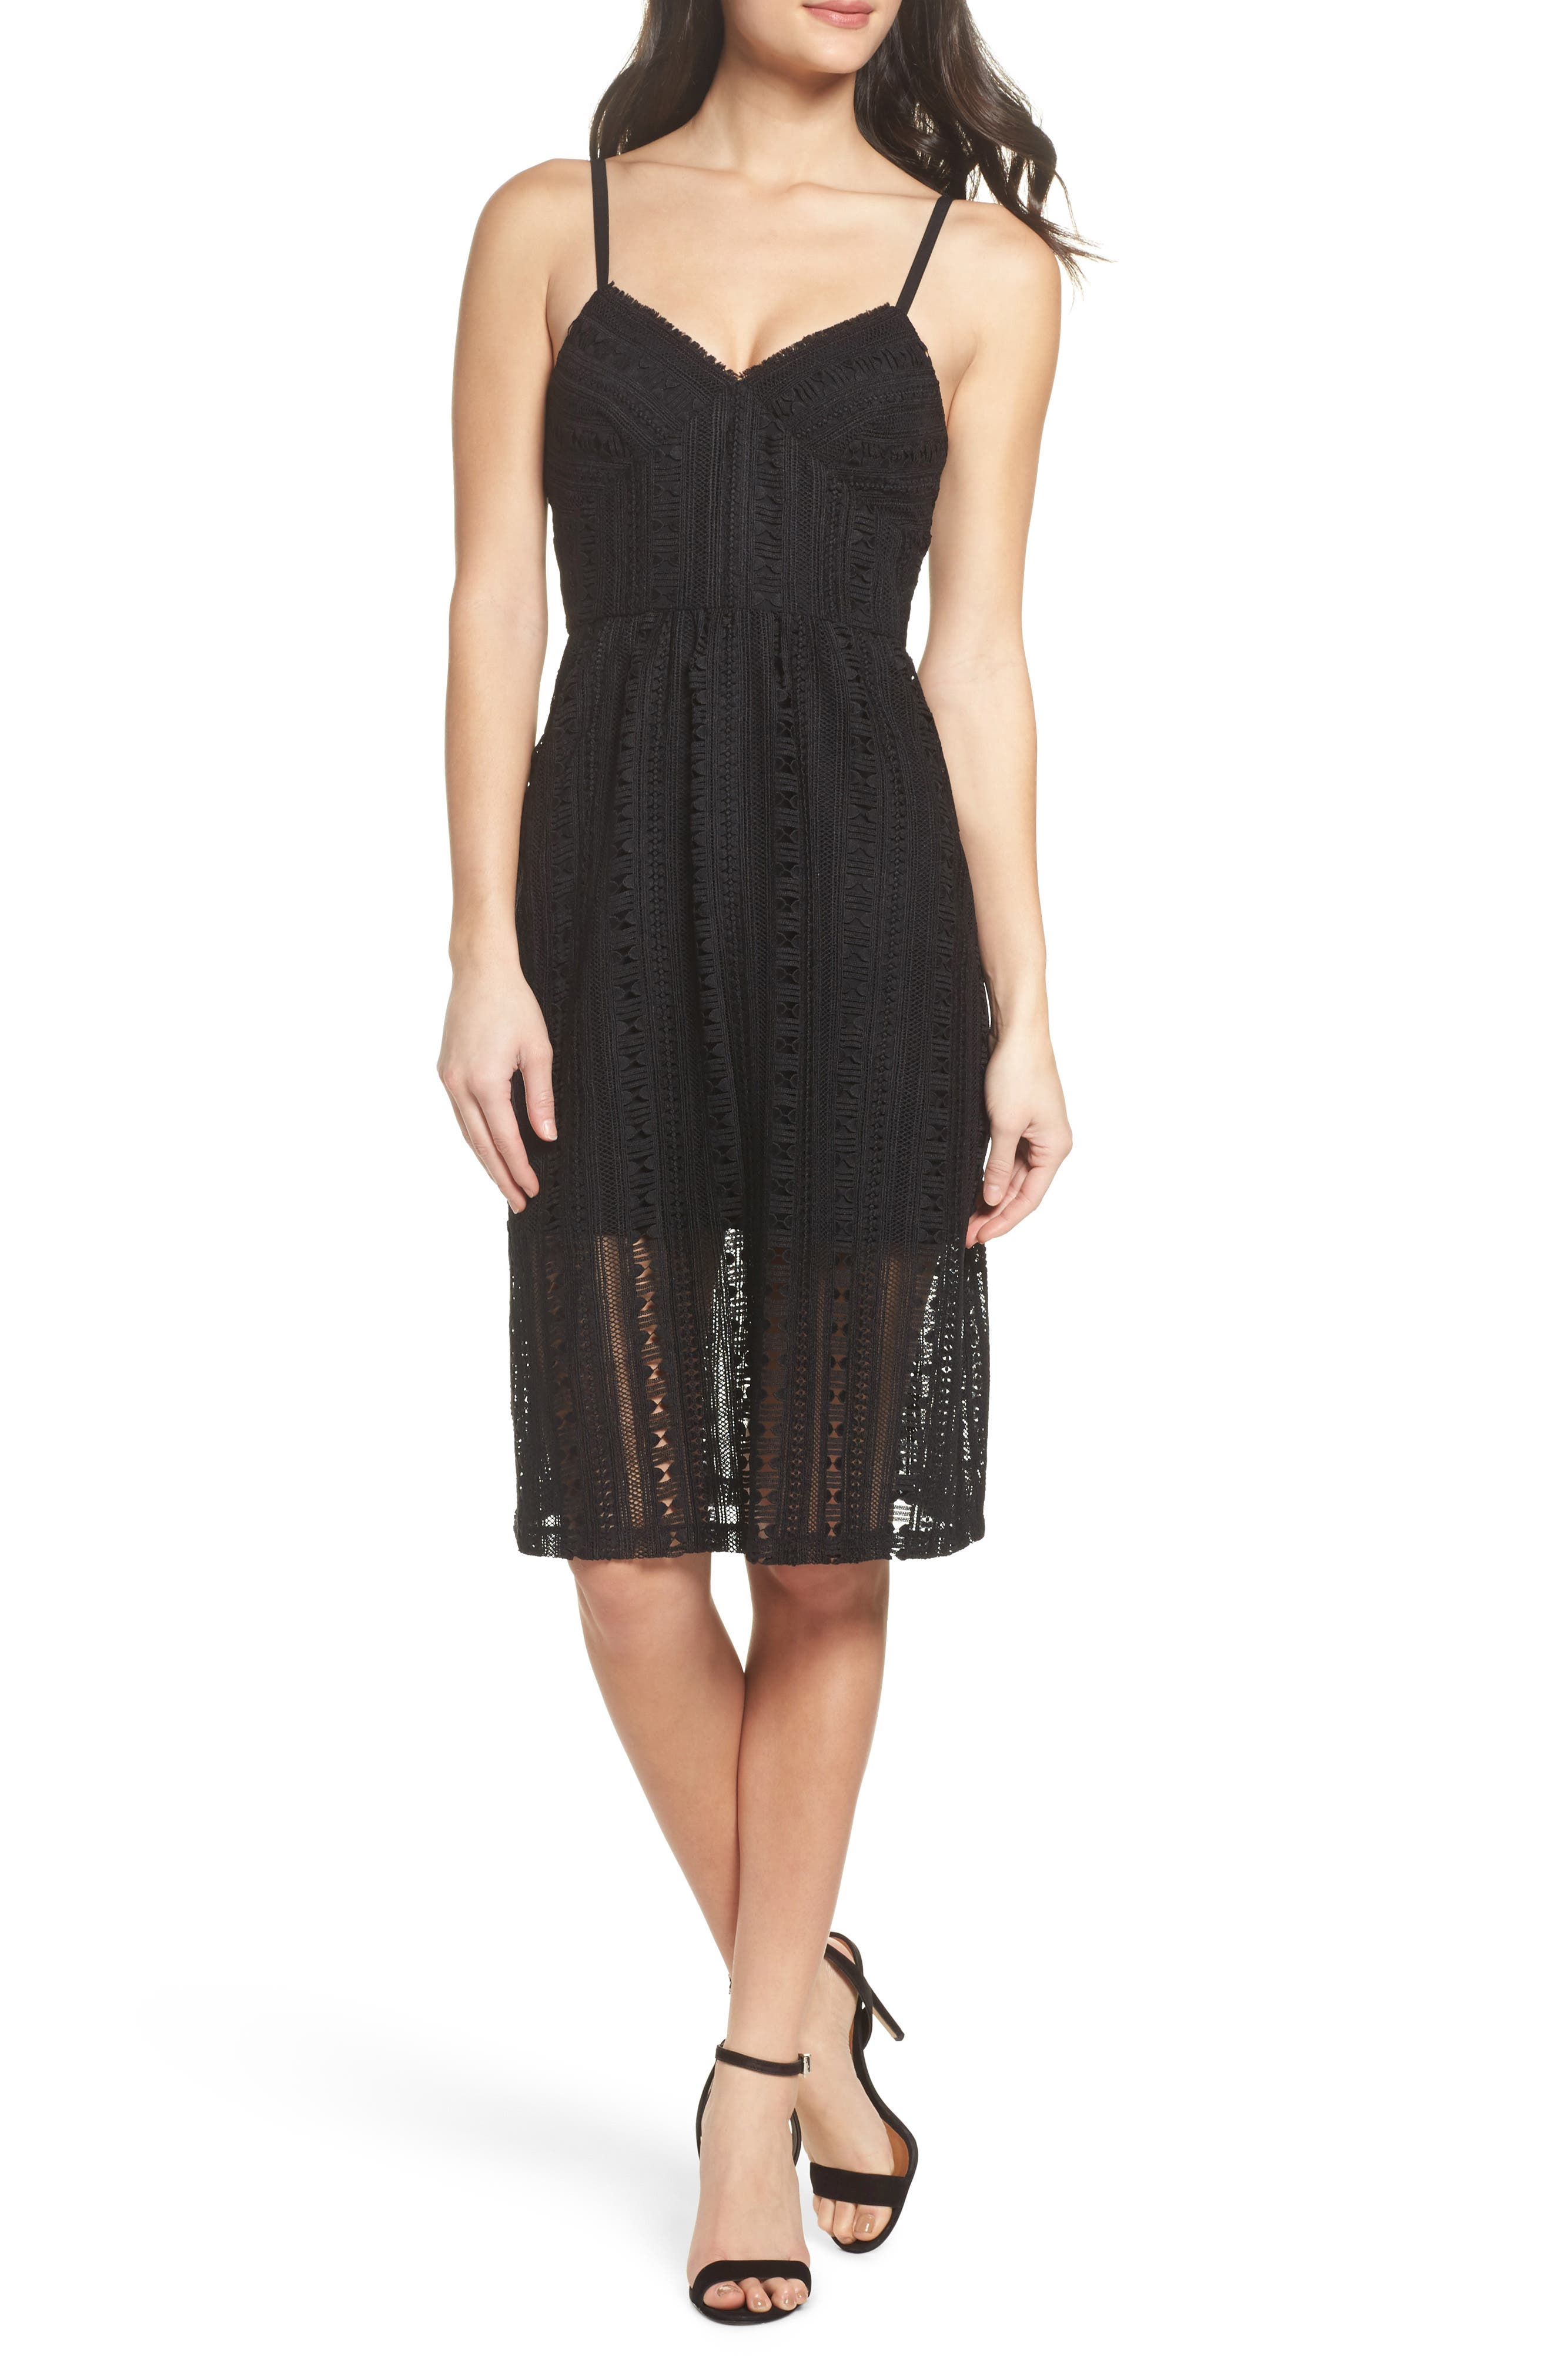 Alternate Image 1 Selected - Ali & Jay Belissimo Lace Fit & Flare Midi Dress